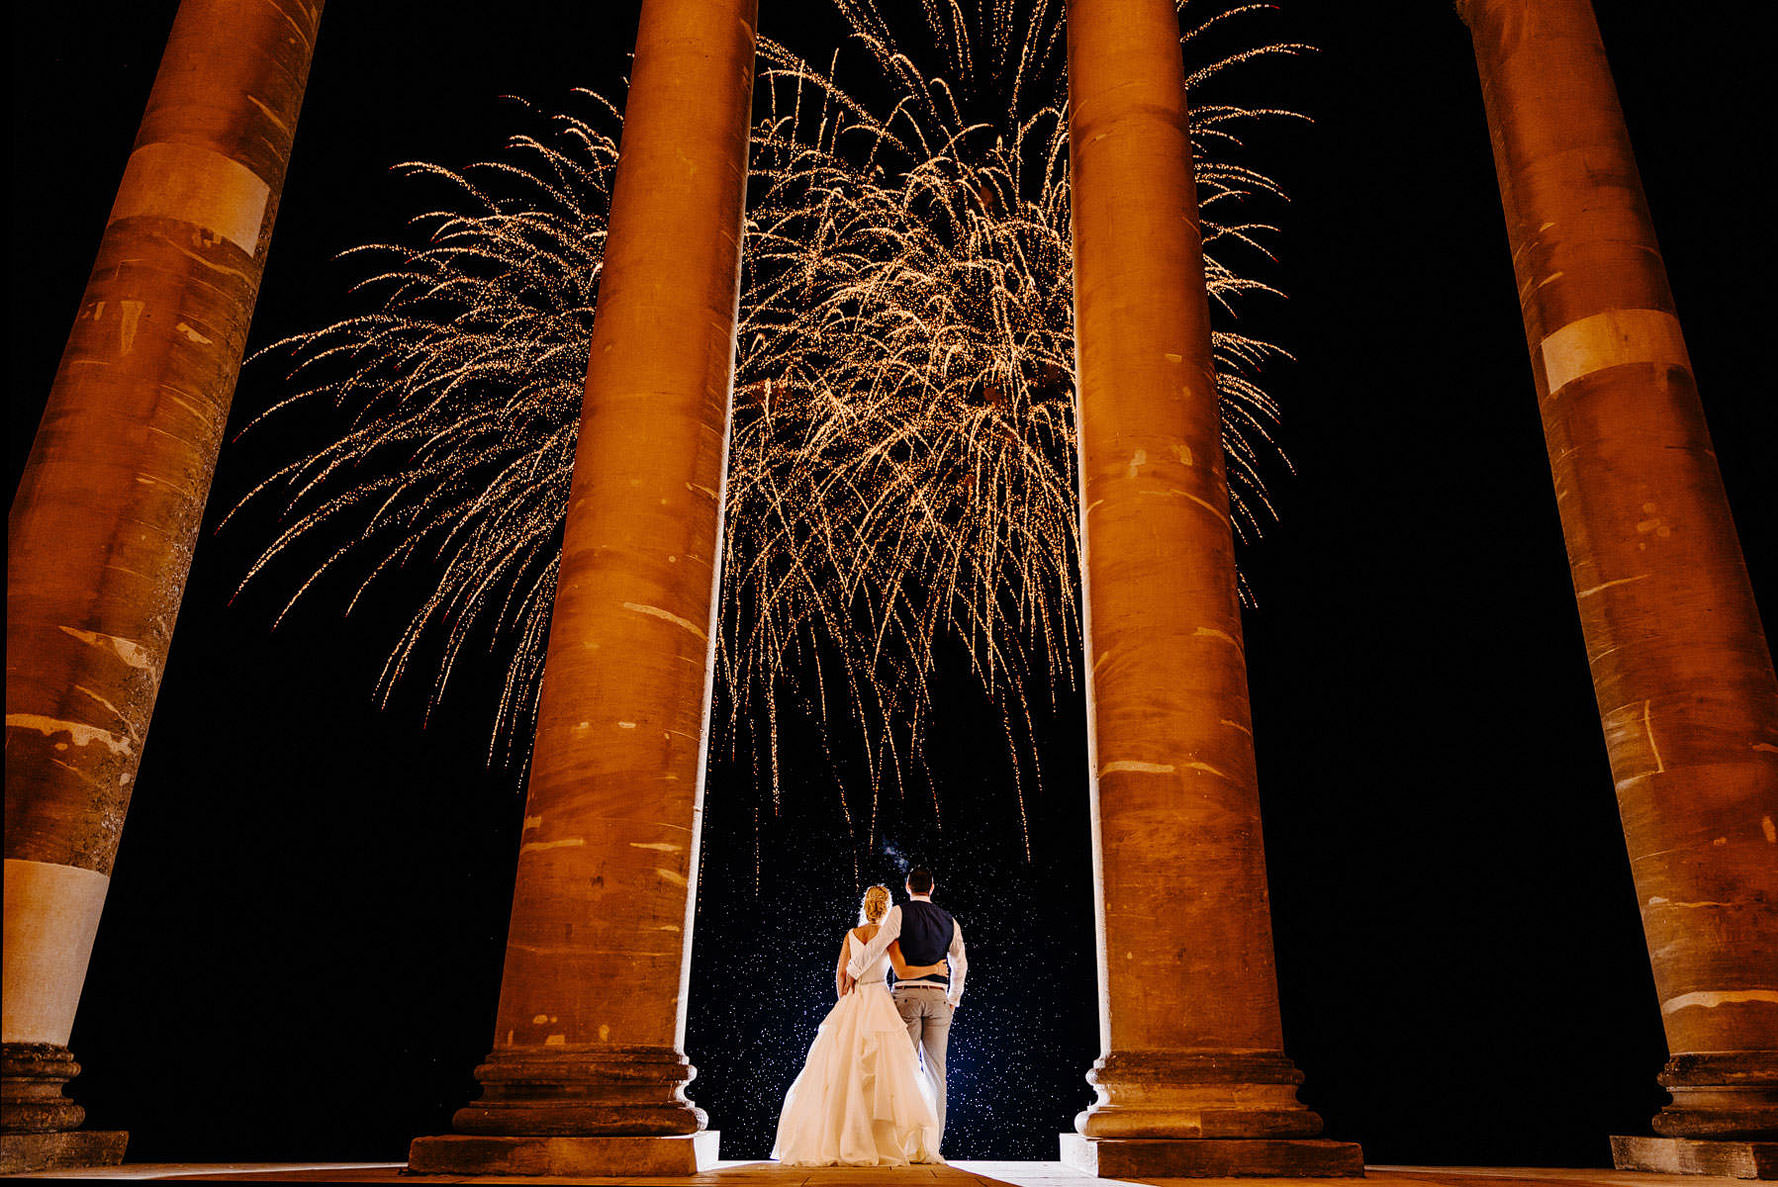 Stowe House wedding photography by Elliot w patching photography